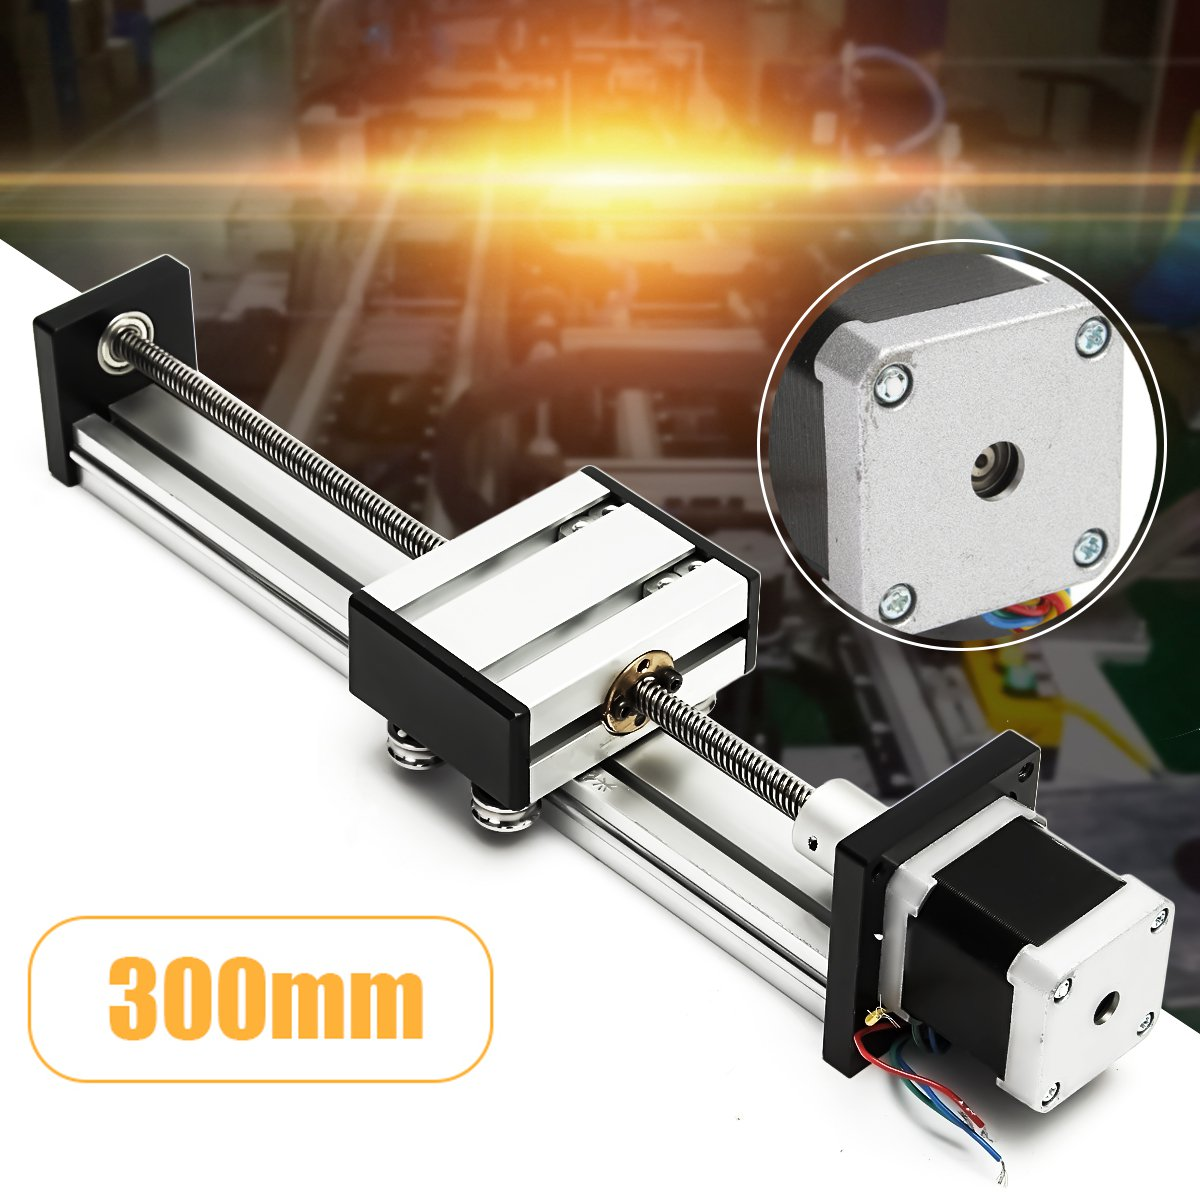 300mm Slide Stroke CNC Linear Motion Lead Ball Screw Slide Stage Stroke 42 Motor Actuator Stepper For Engraving Machine funssor 50mm 150mm slide stroke cnc z axis slide linear motion nema17 stepper motor for reprap engraving machine